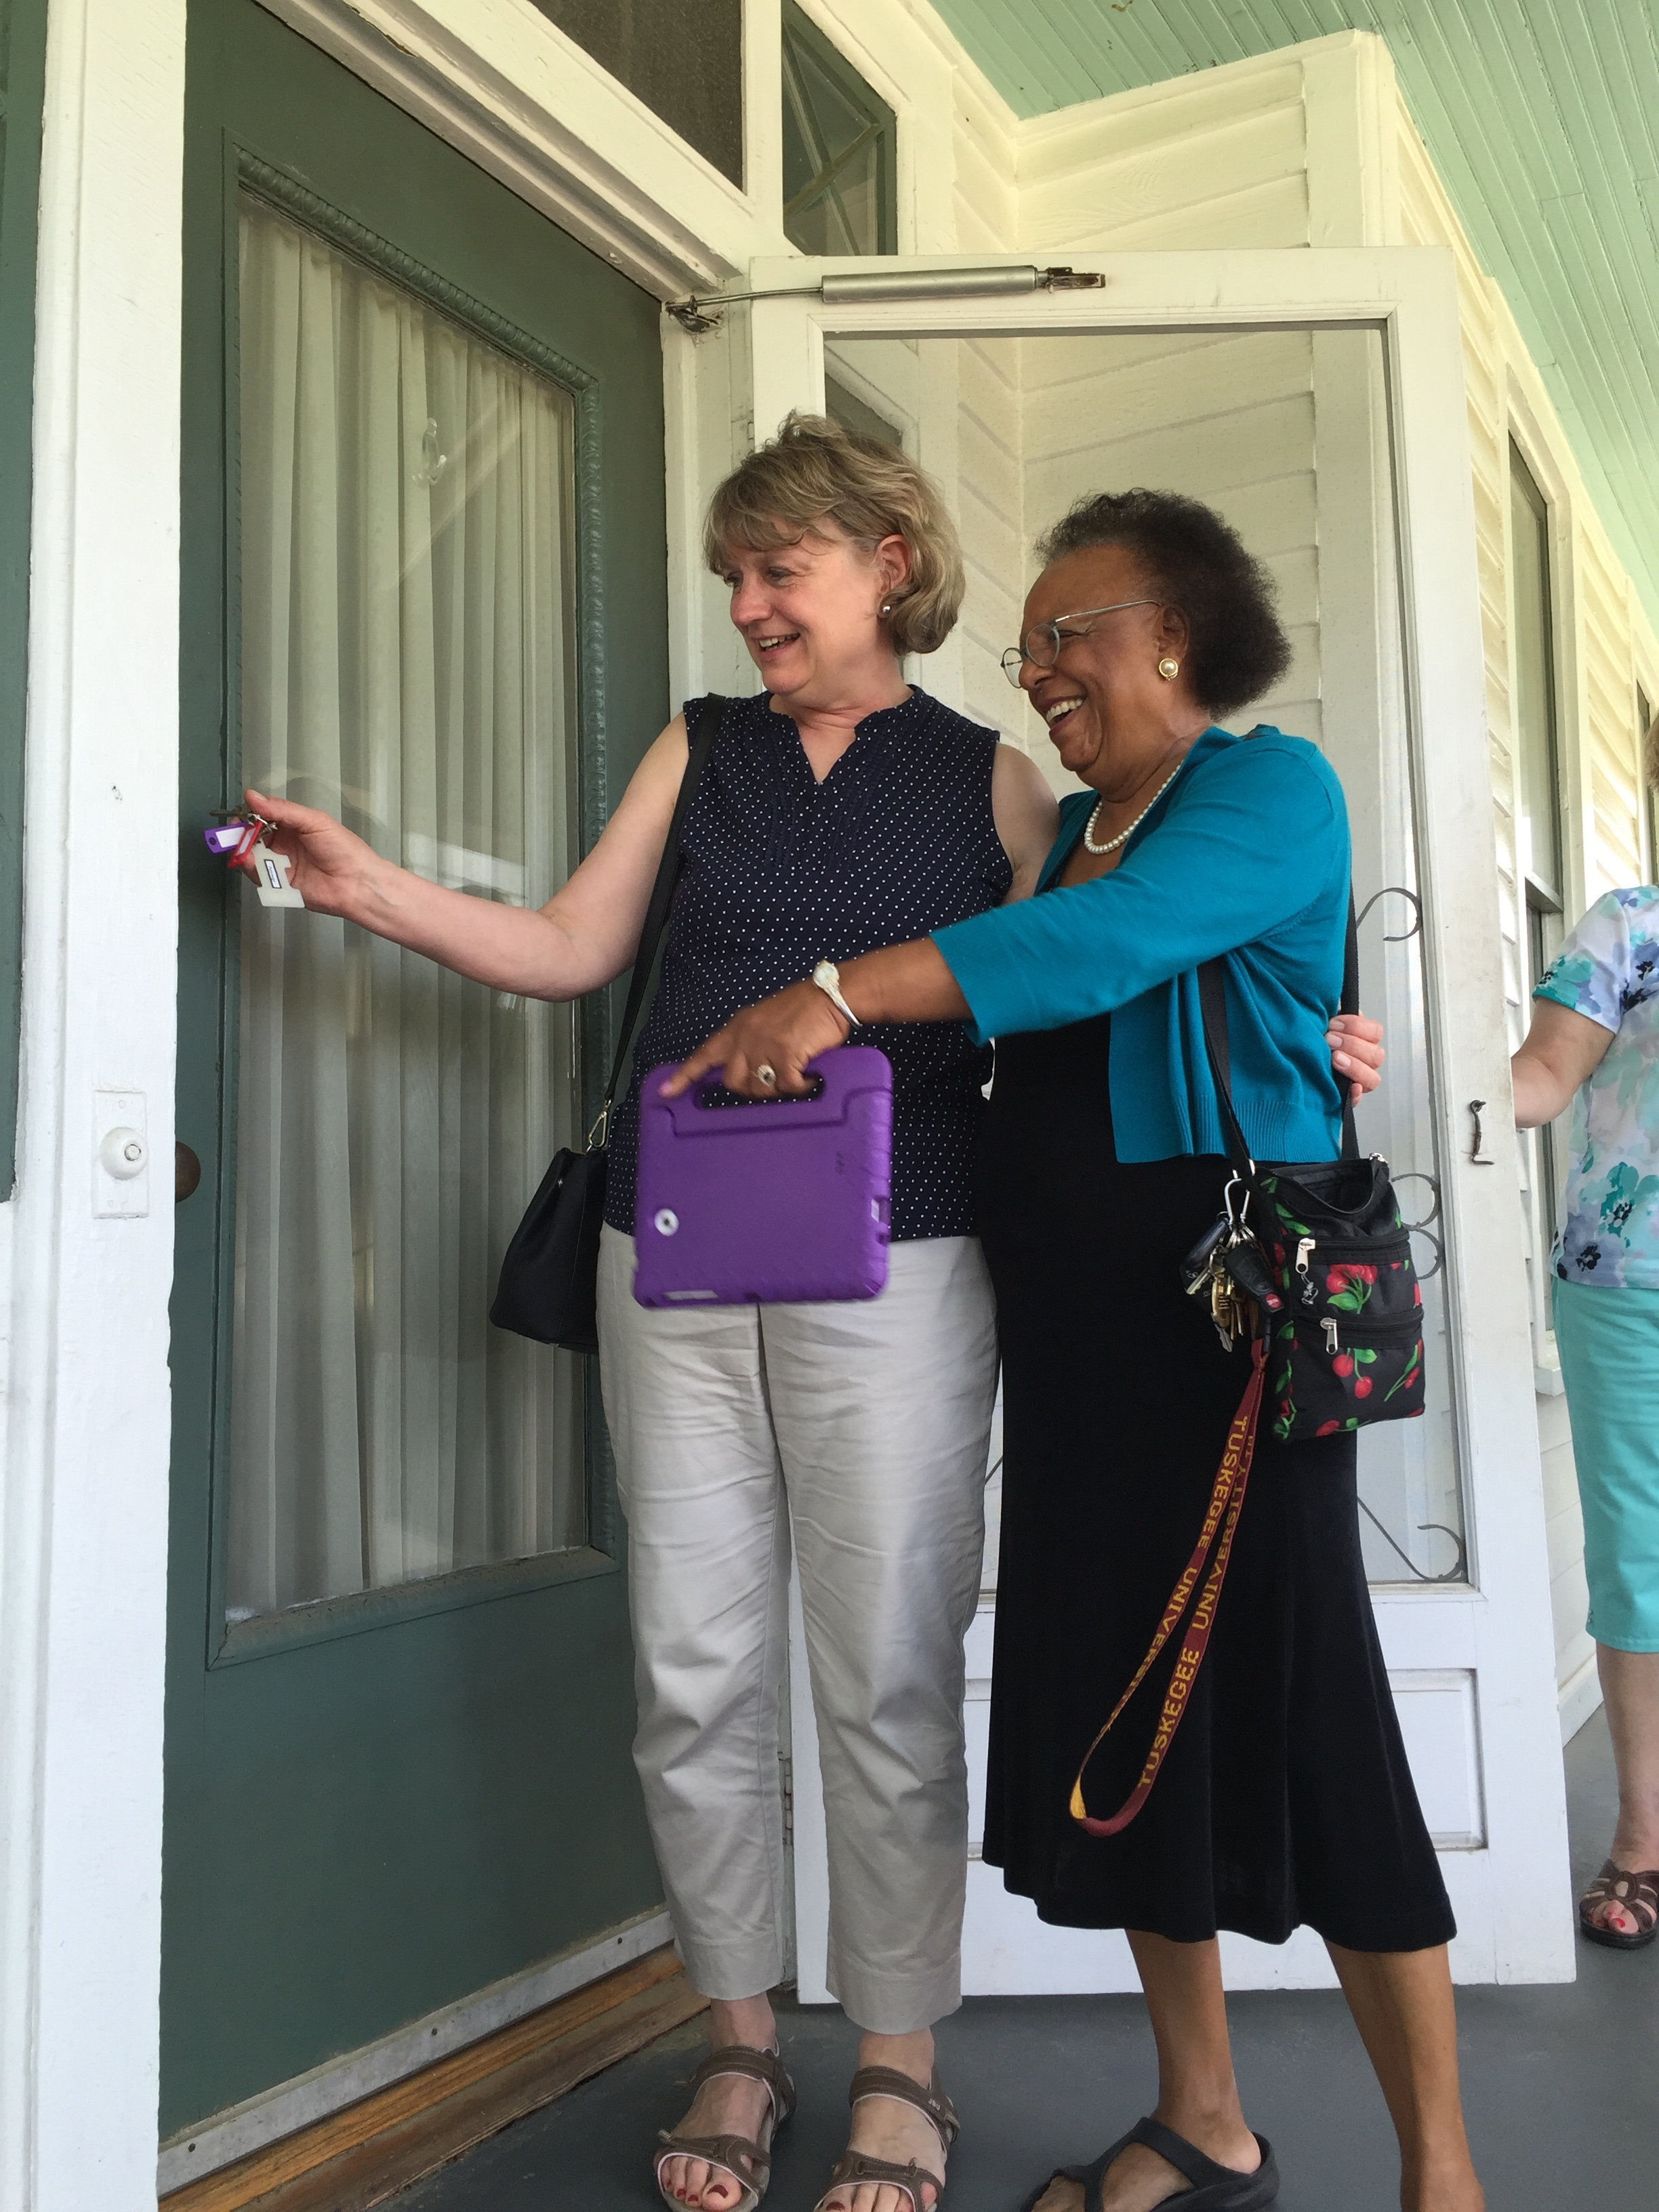 Ann Svennungsen unlocking MLK's parsonage door